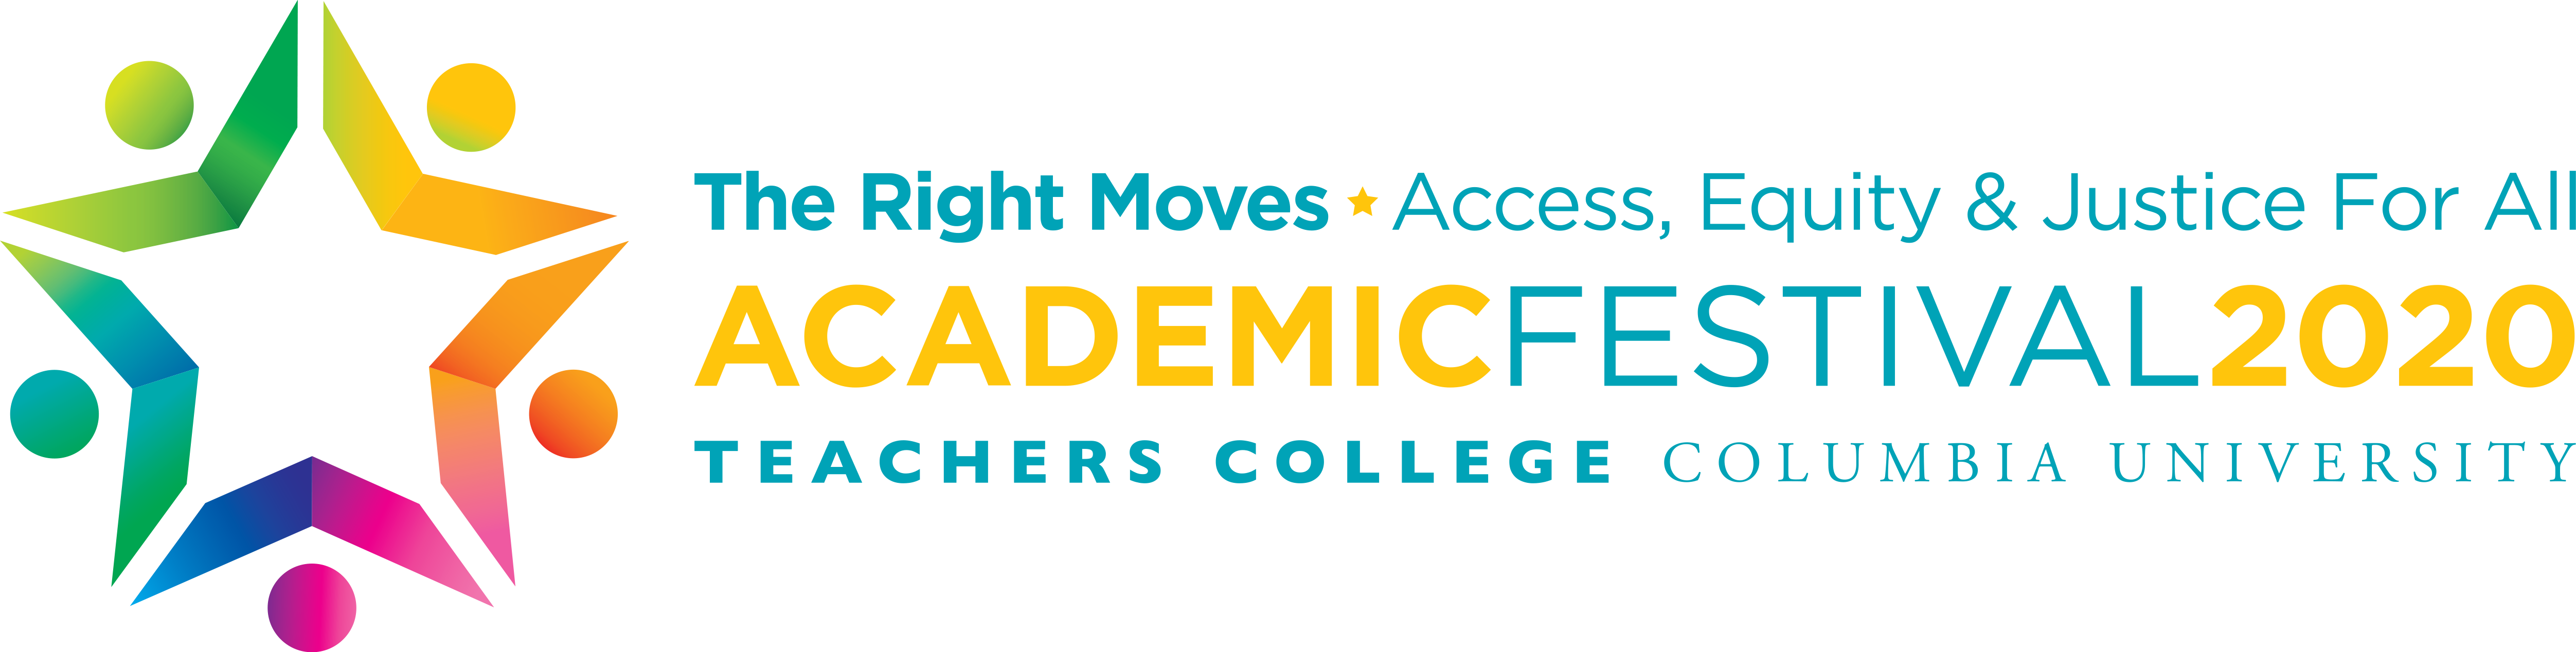 The Right Moves: Access, Equity & Justice for All